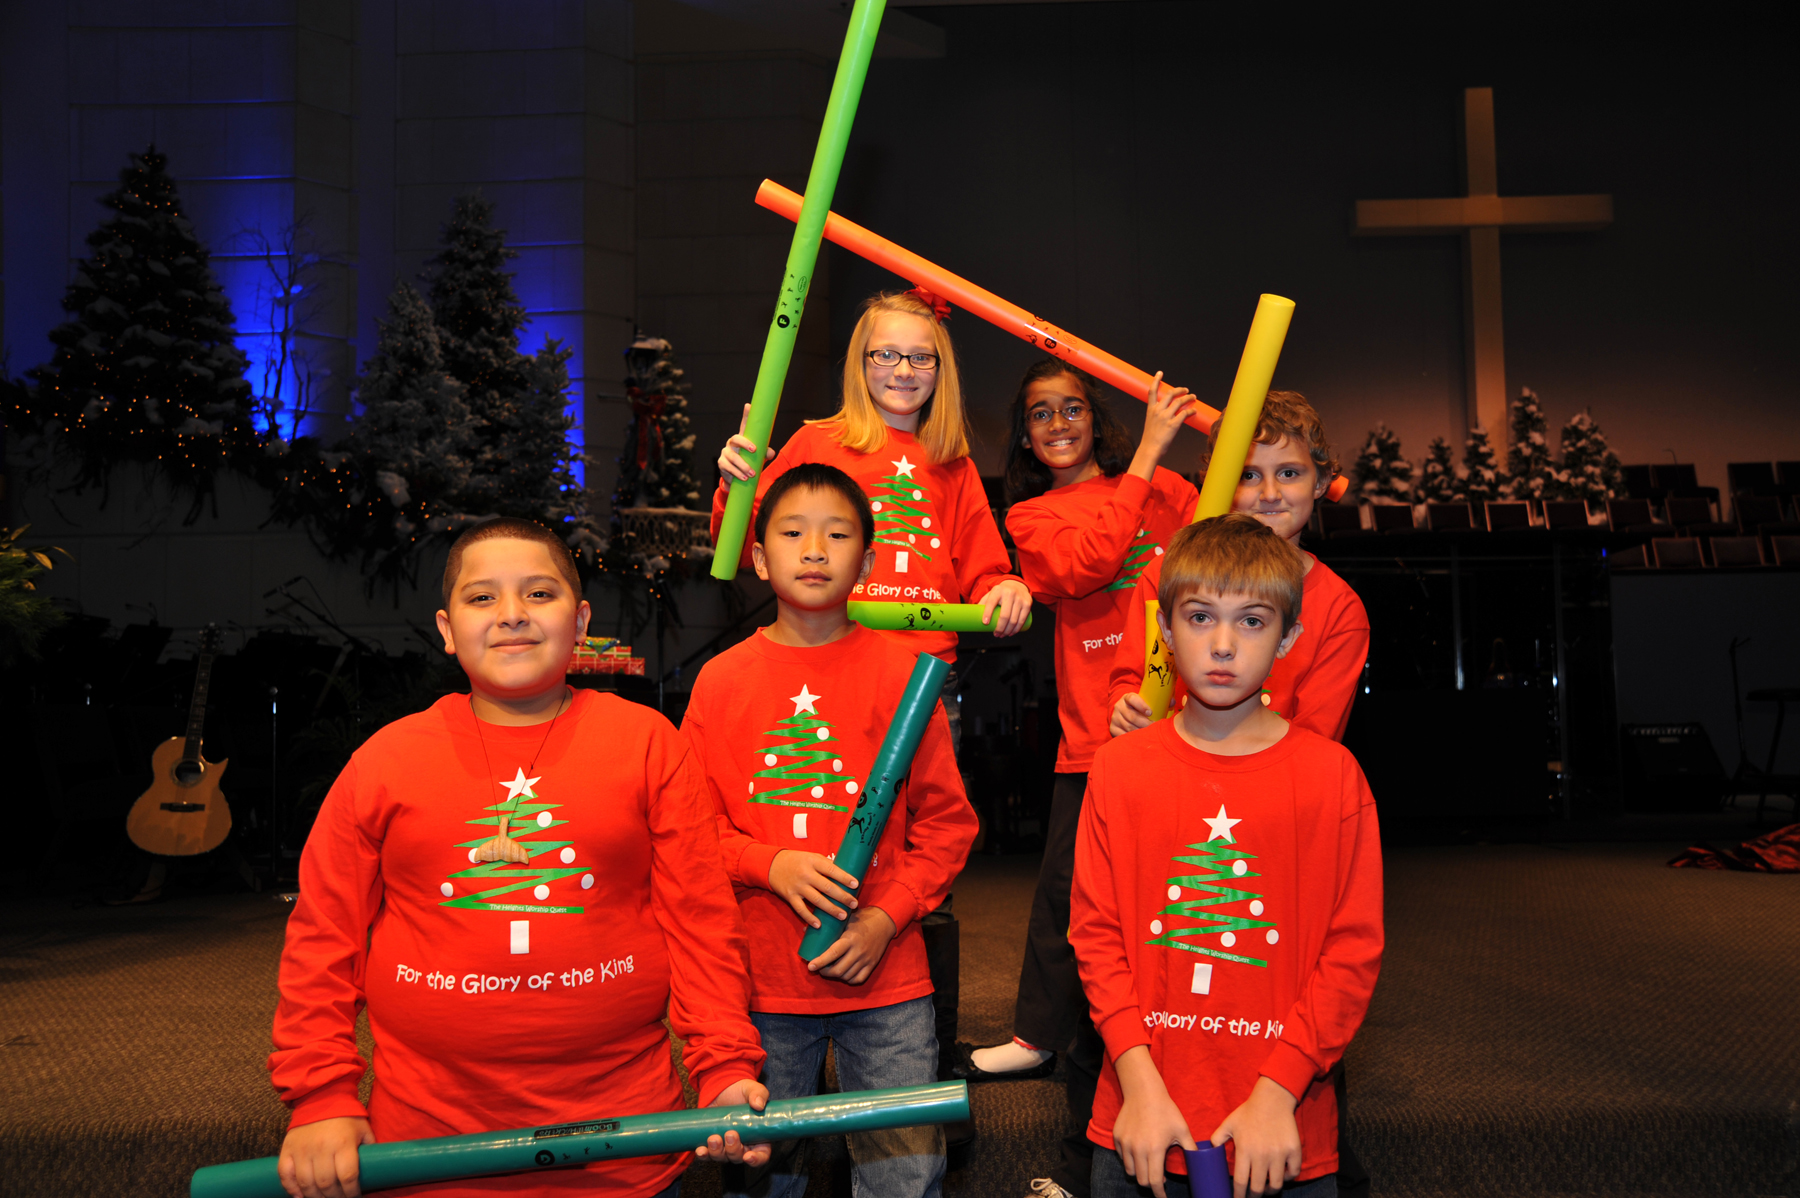 'For the Glory of the King' at The Heights Baptist Church